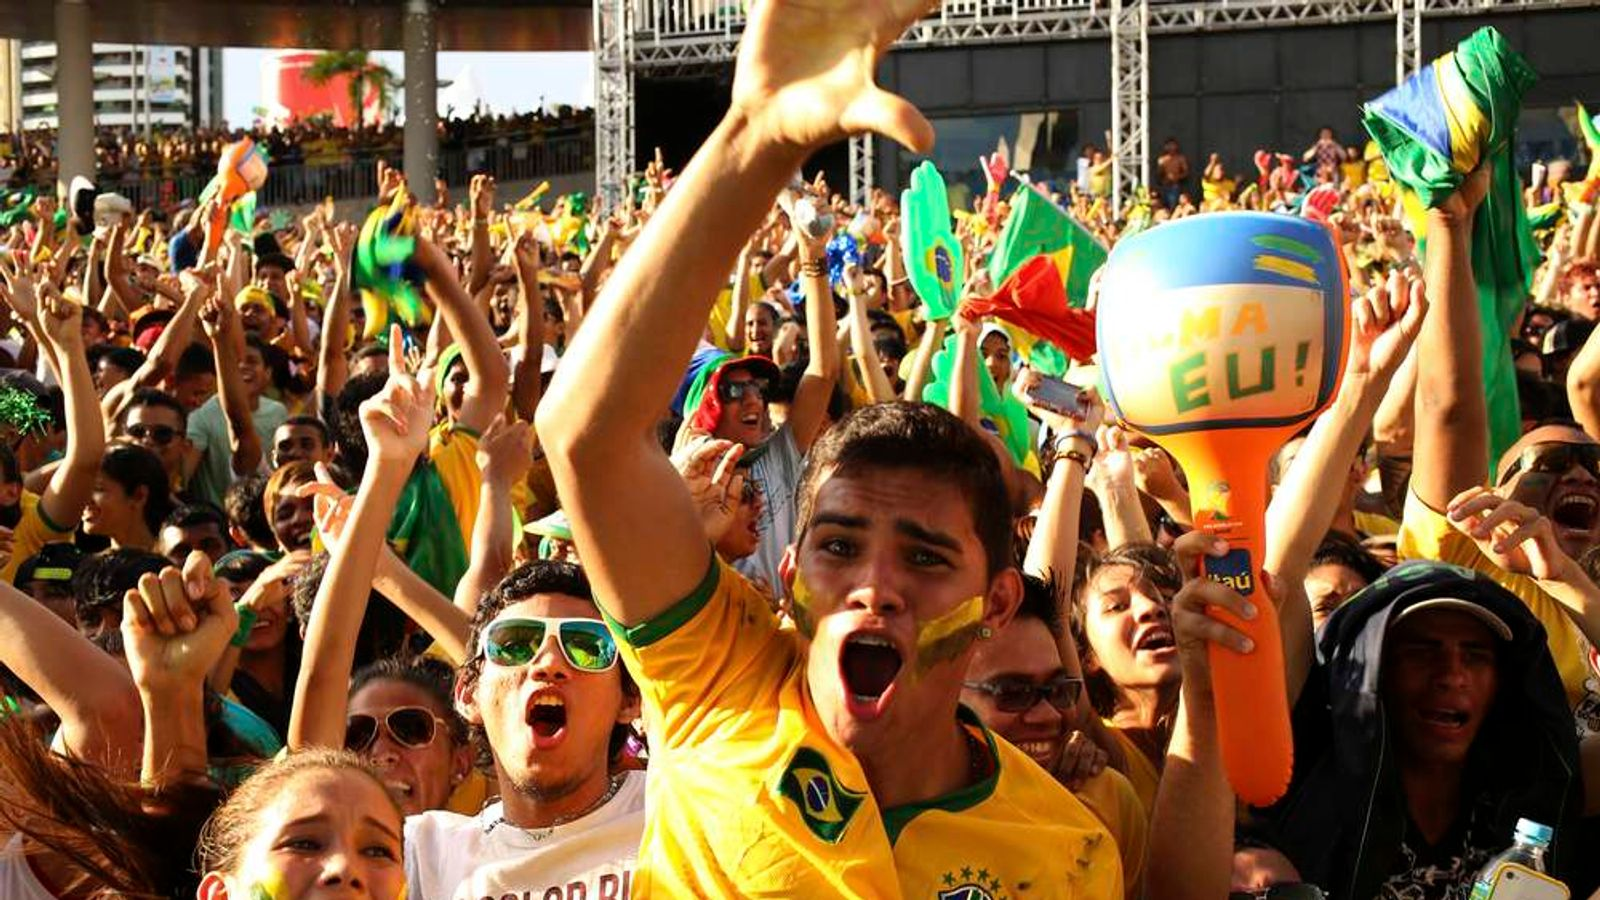 Brazilian Fans Celebrat Goal At Eventy In Manaus